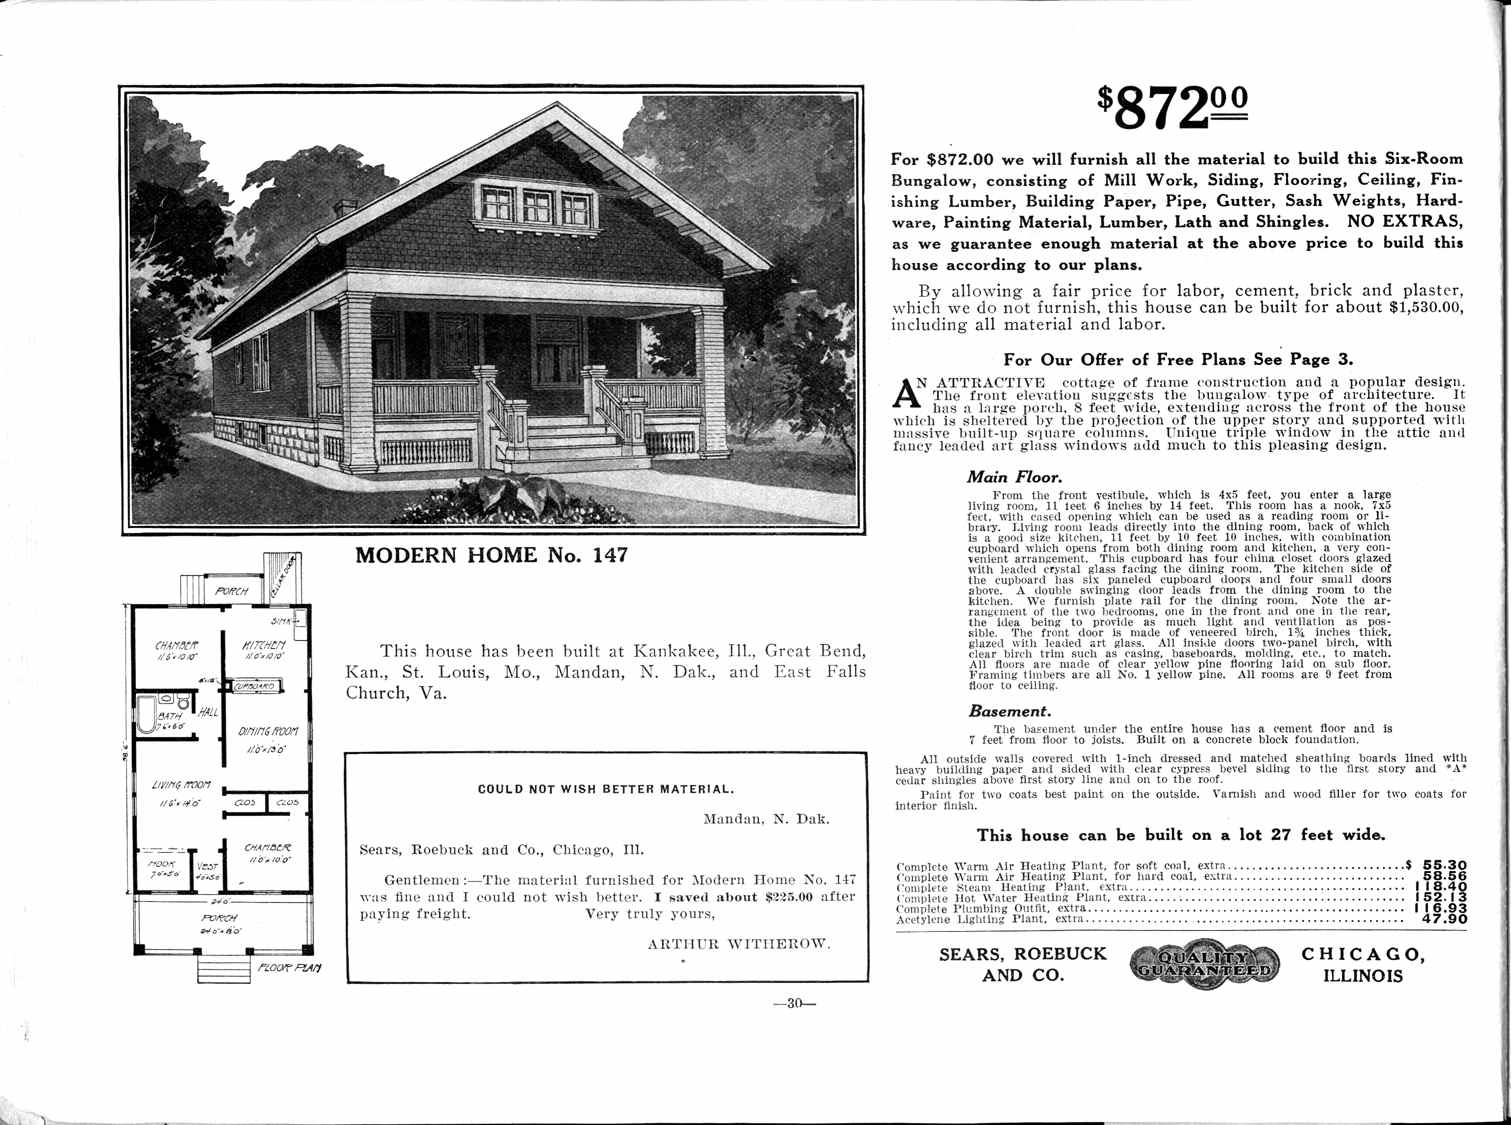 Image of a Sears Home kit that looks similar to the home at 13 Branch Street. Renovations may have been made since its construction in 1911.